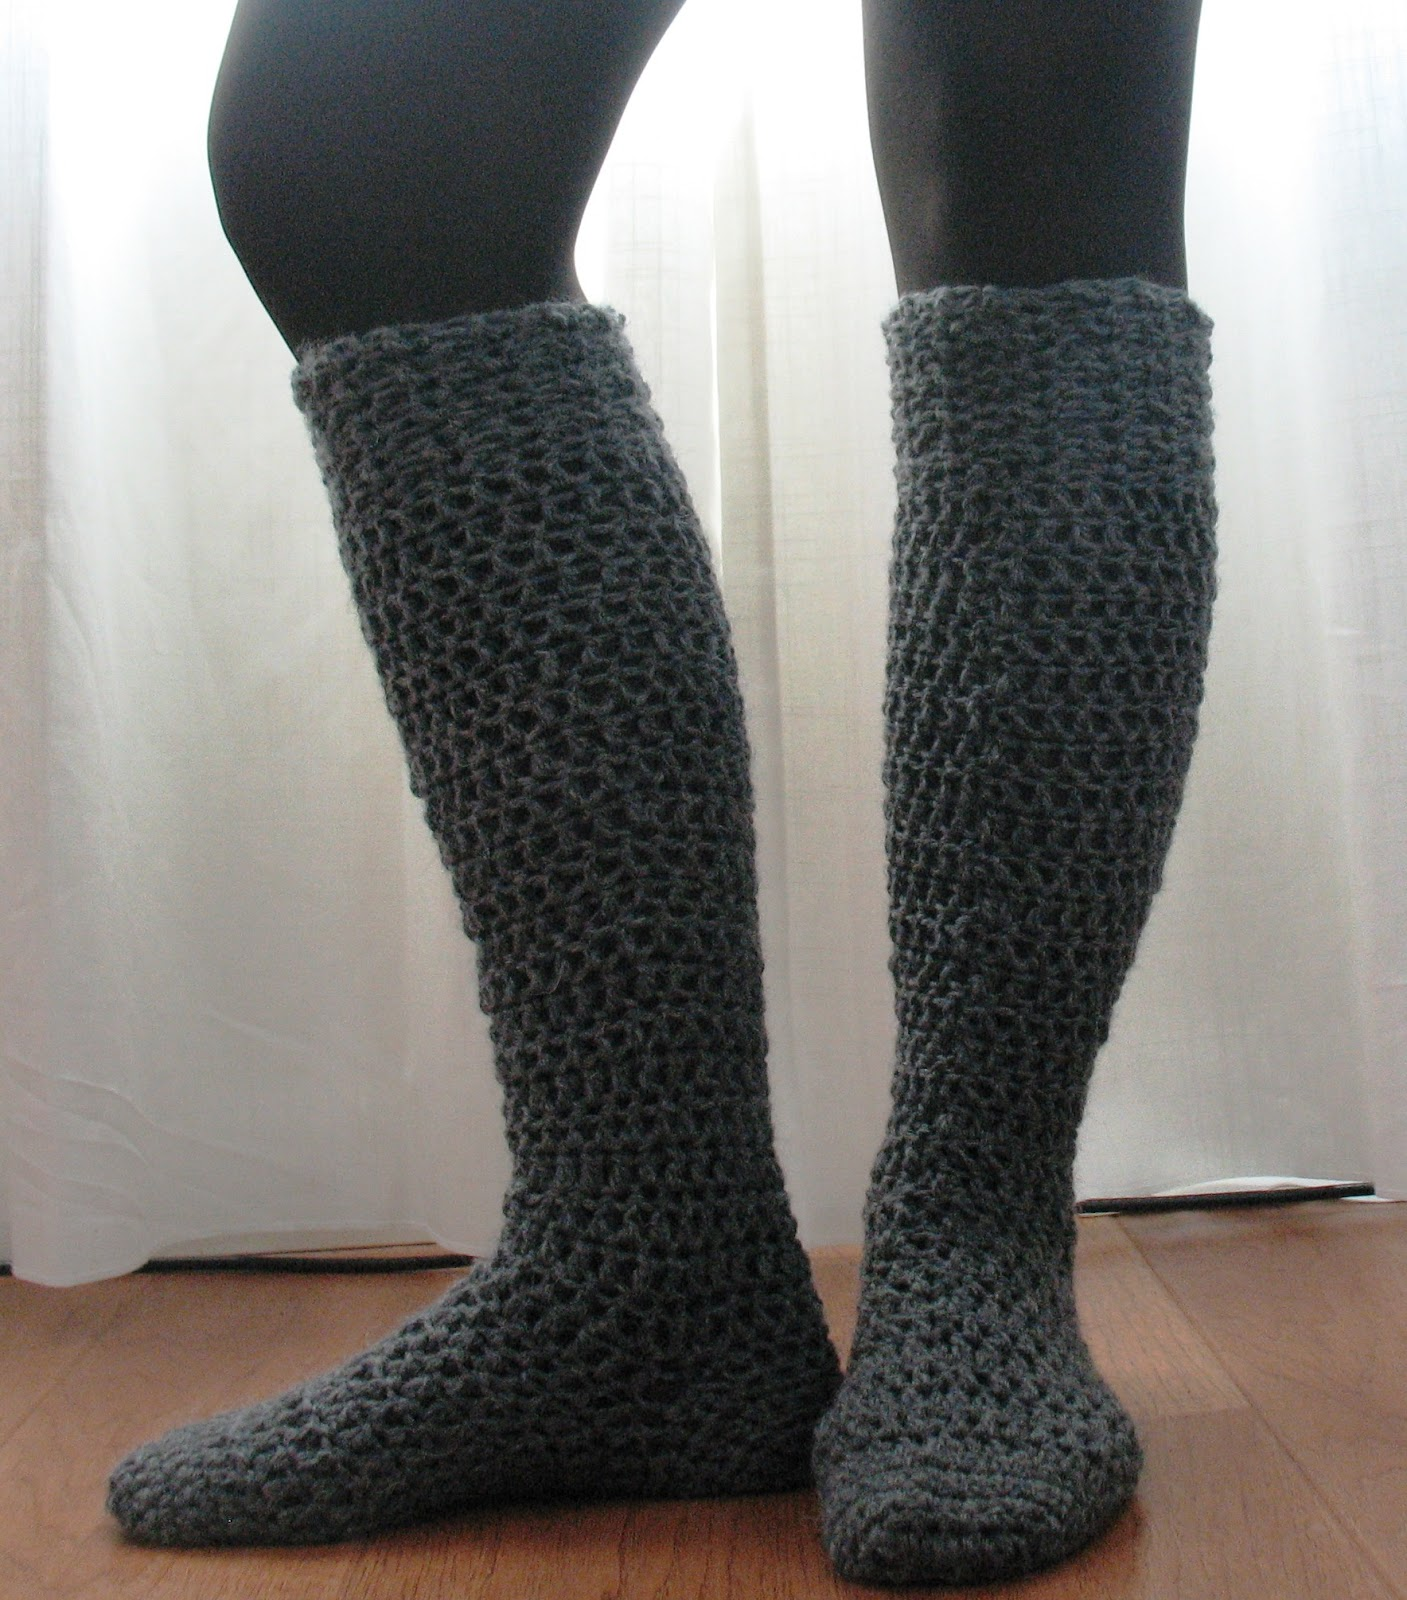 hank n skein knee high boot socks